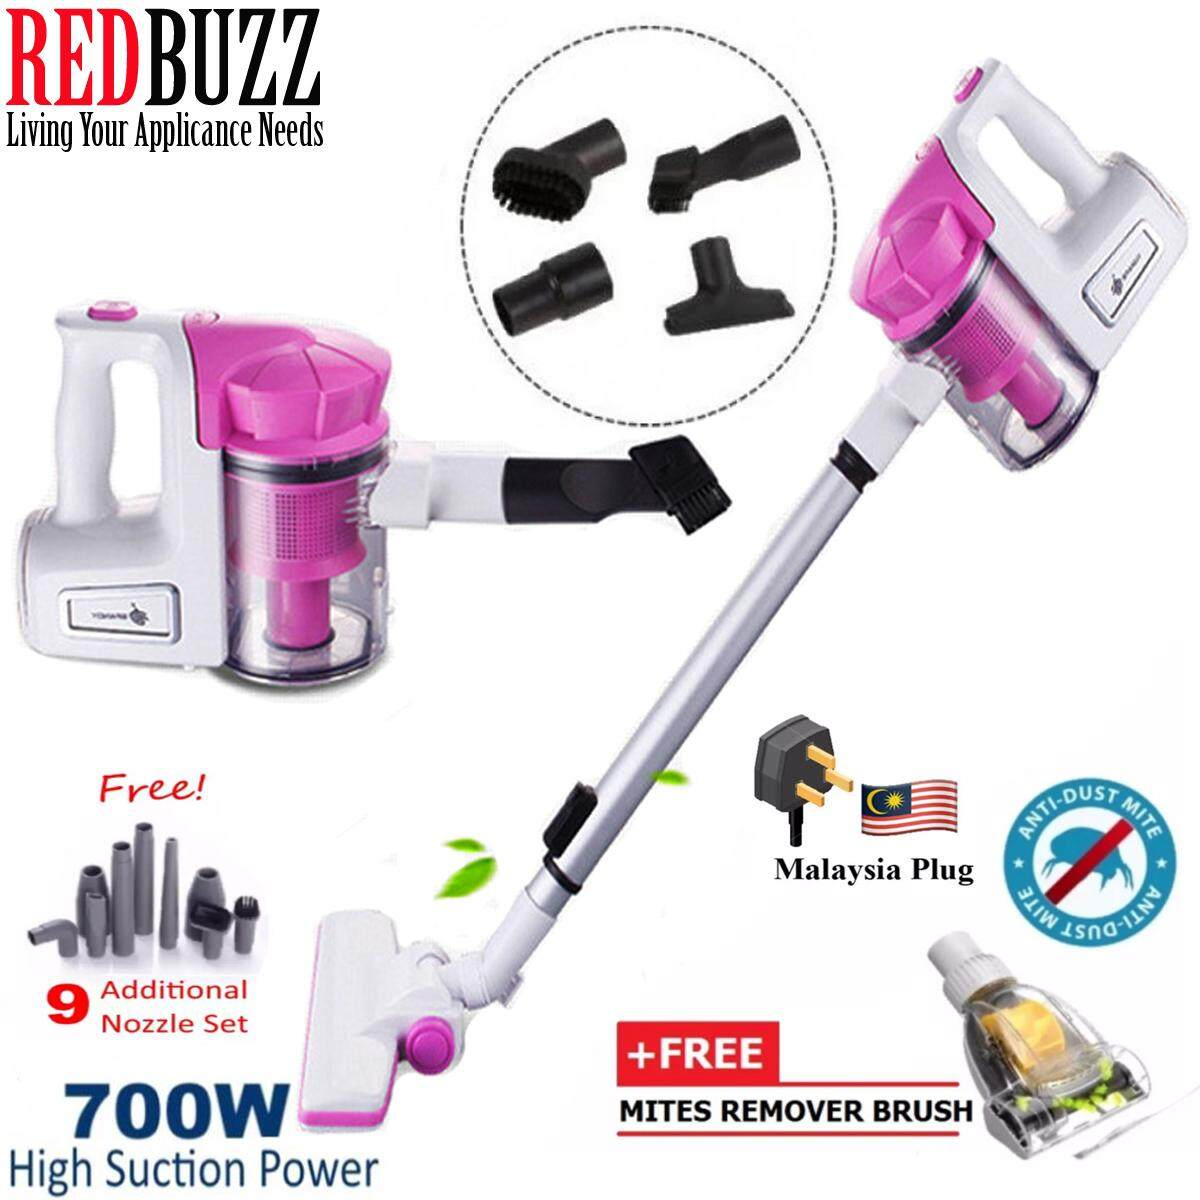 (Malaysia 3-Pin Plug) Spandy 2 in 1 Handheld Cyclone 700W Strong Suction Vacuum Cleaner + Free Mites Removal Brush + 9 Nozzle Set